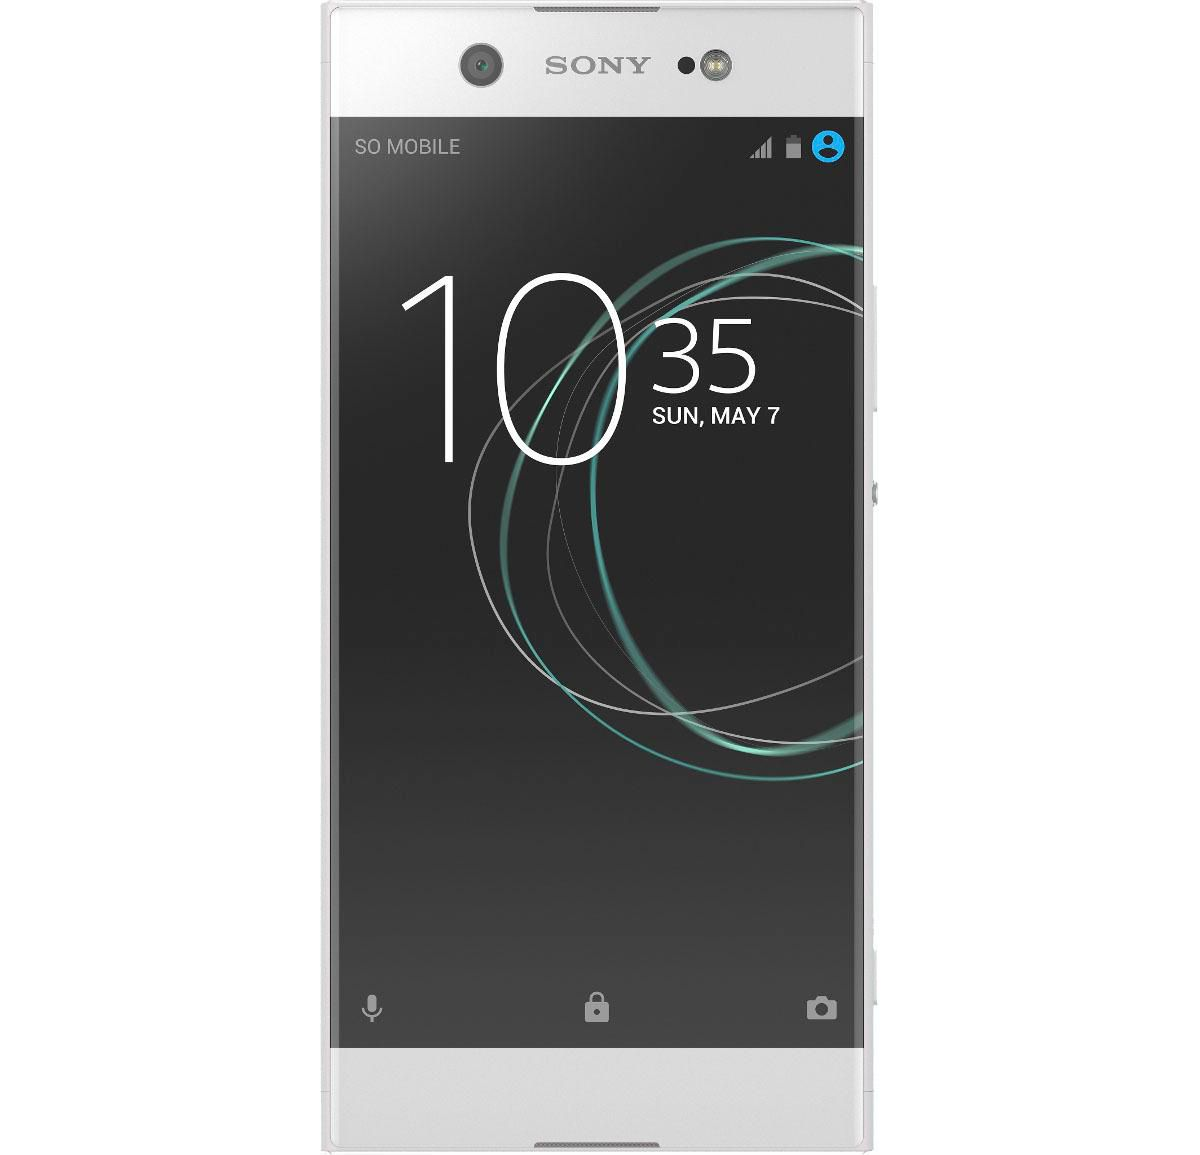 Sony Xperia XA1 Ultra Smartphone, 15,24 cm (6 Zoll) Display, LTE (4G), Android 7.0, 23,0 Megapixel